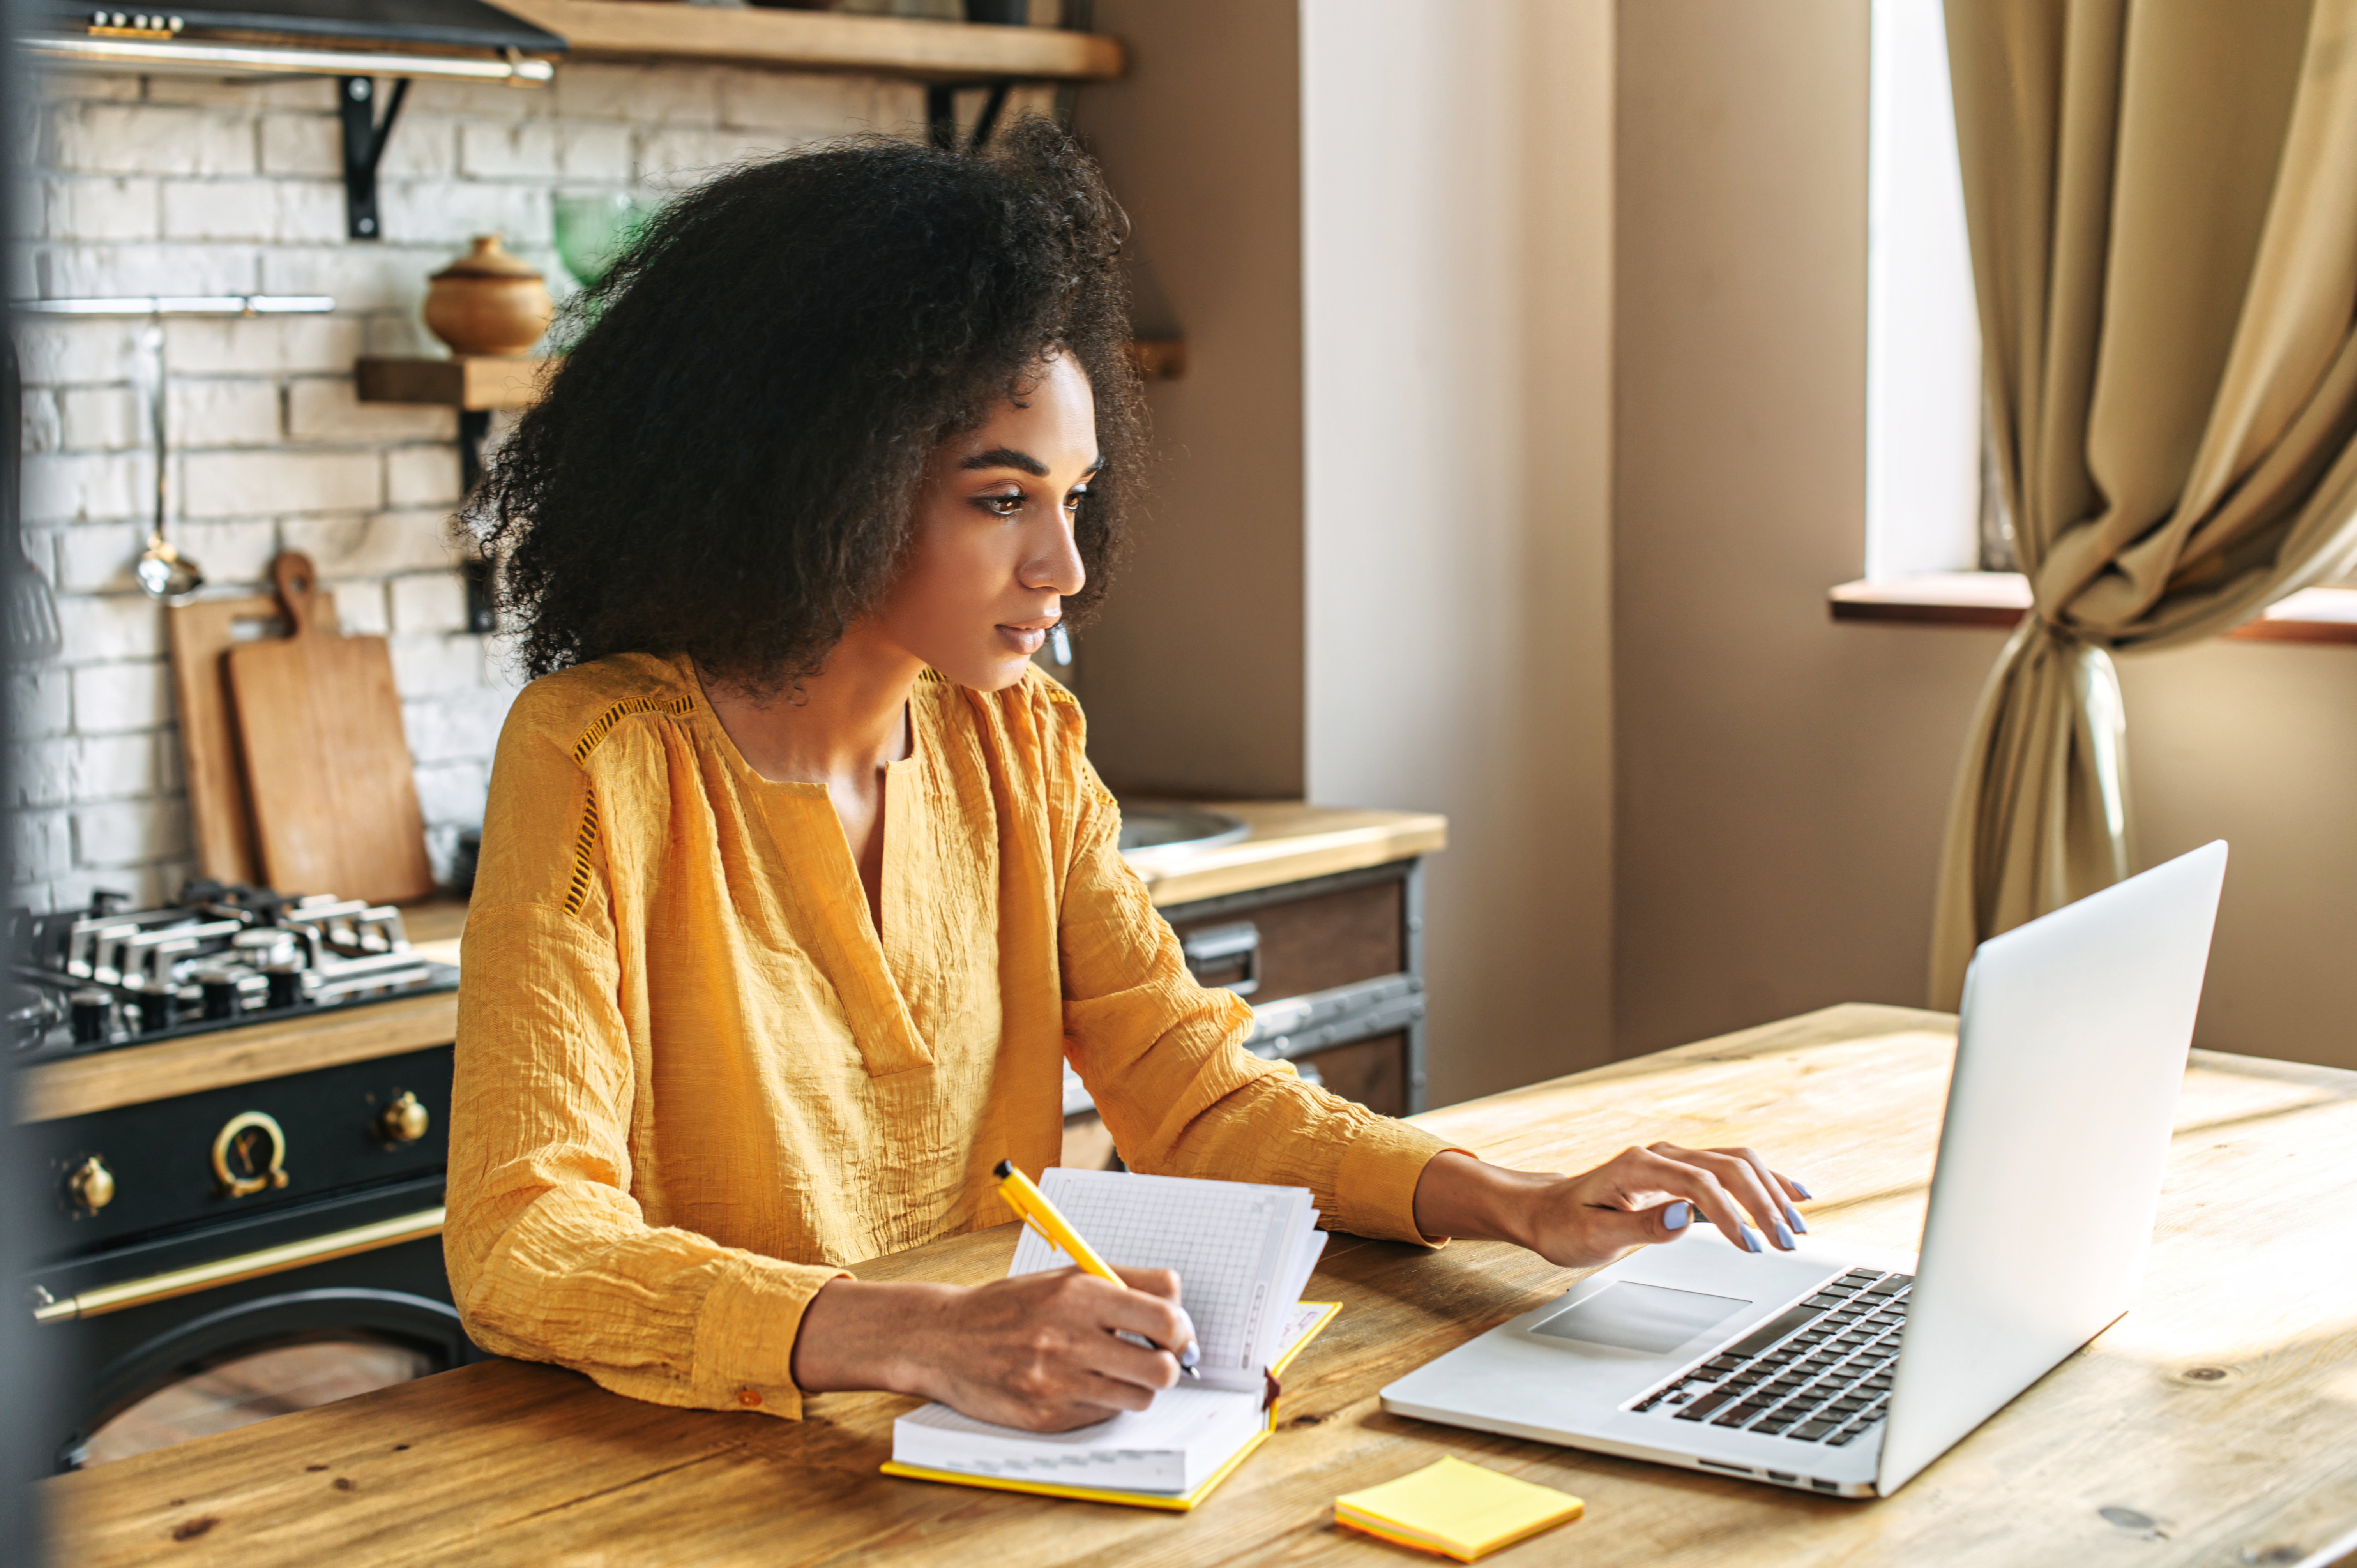 Woman remote working demonstrating quality of hire